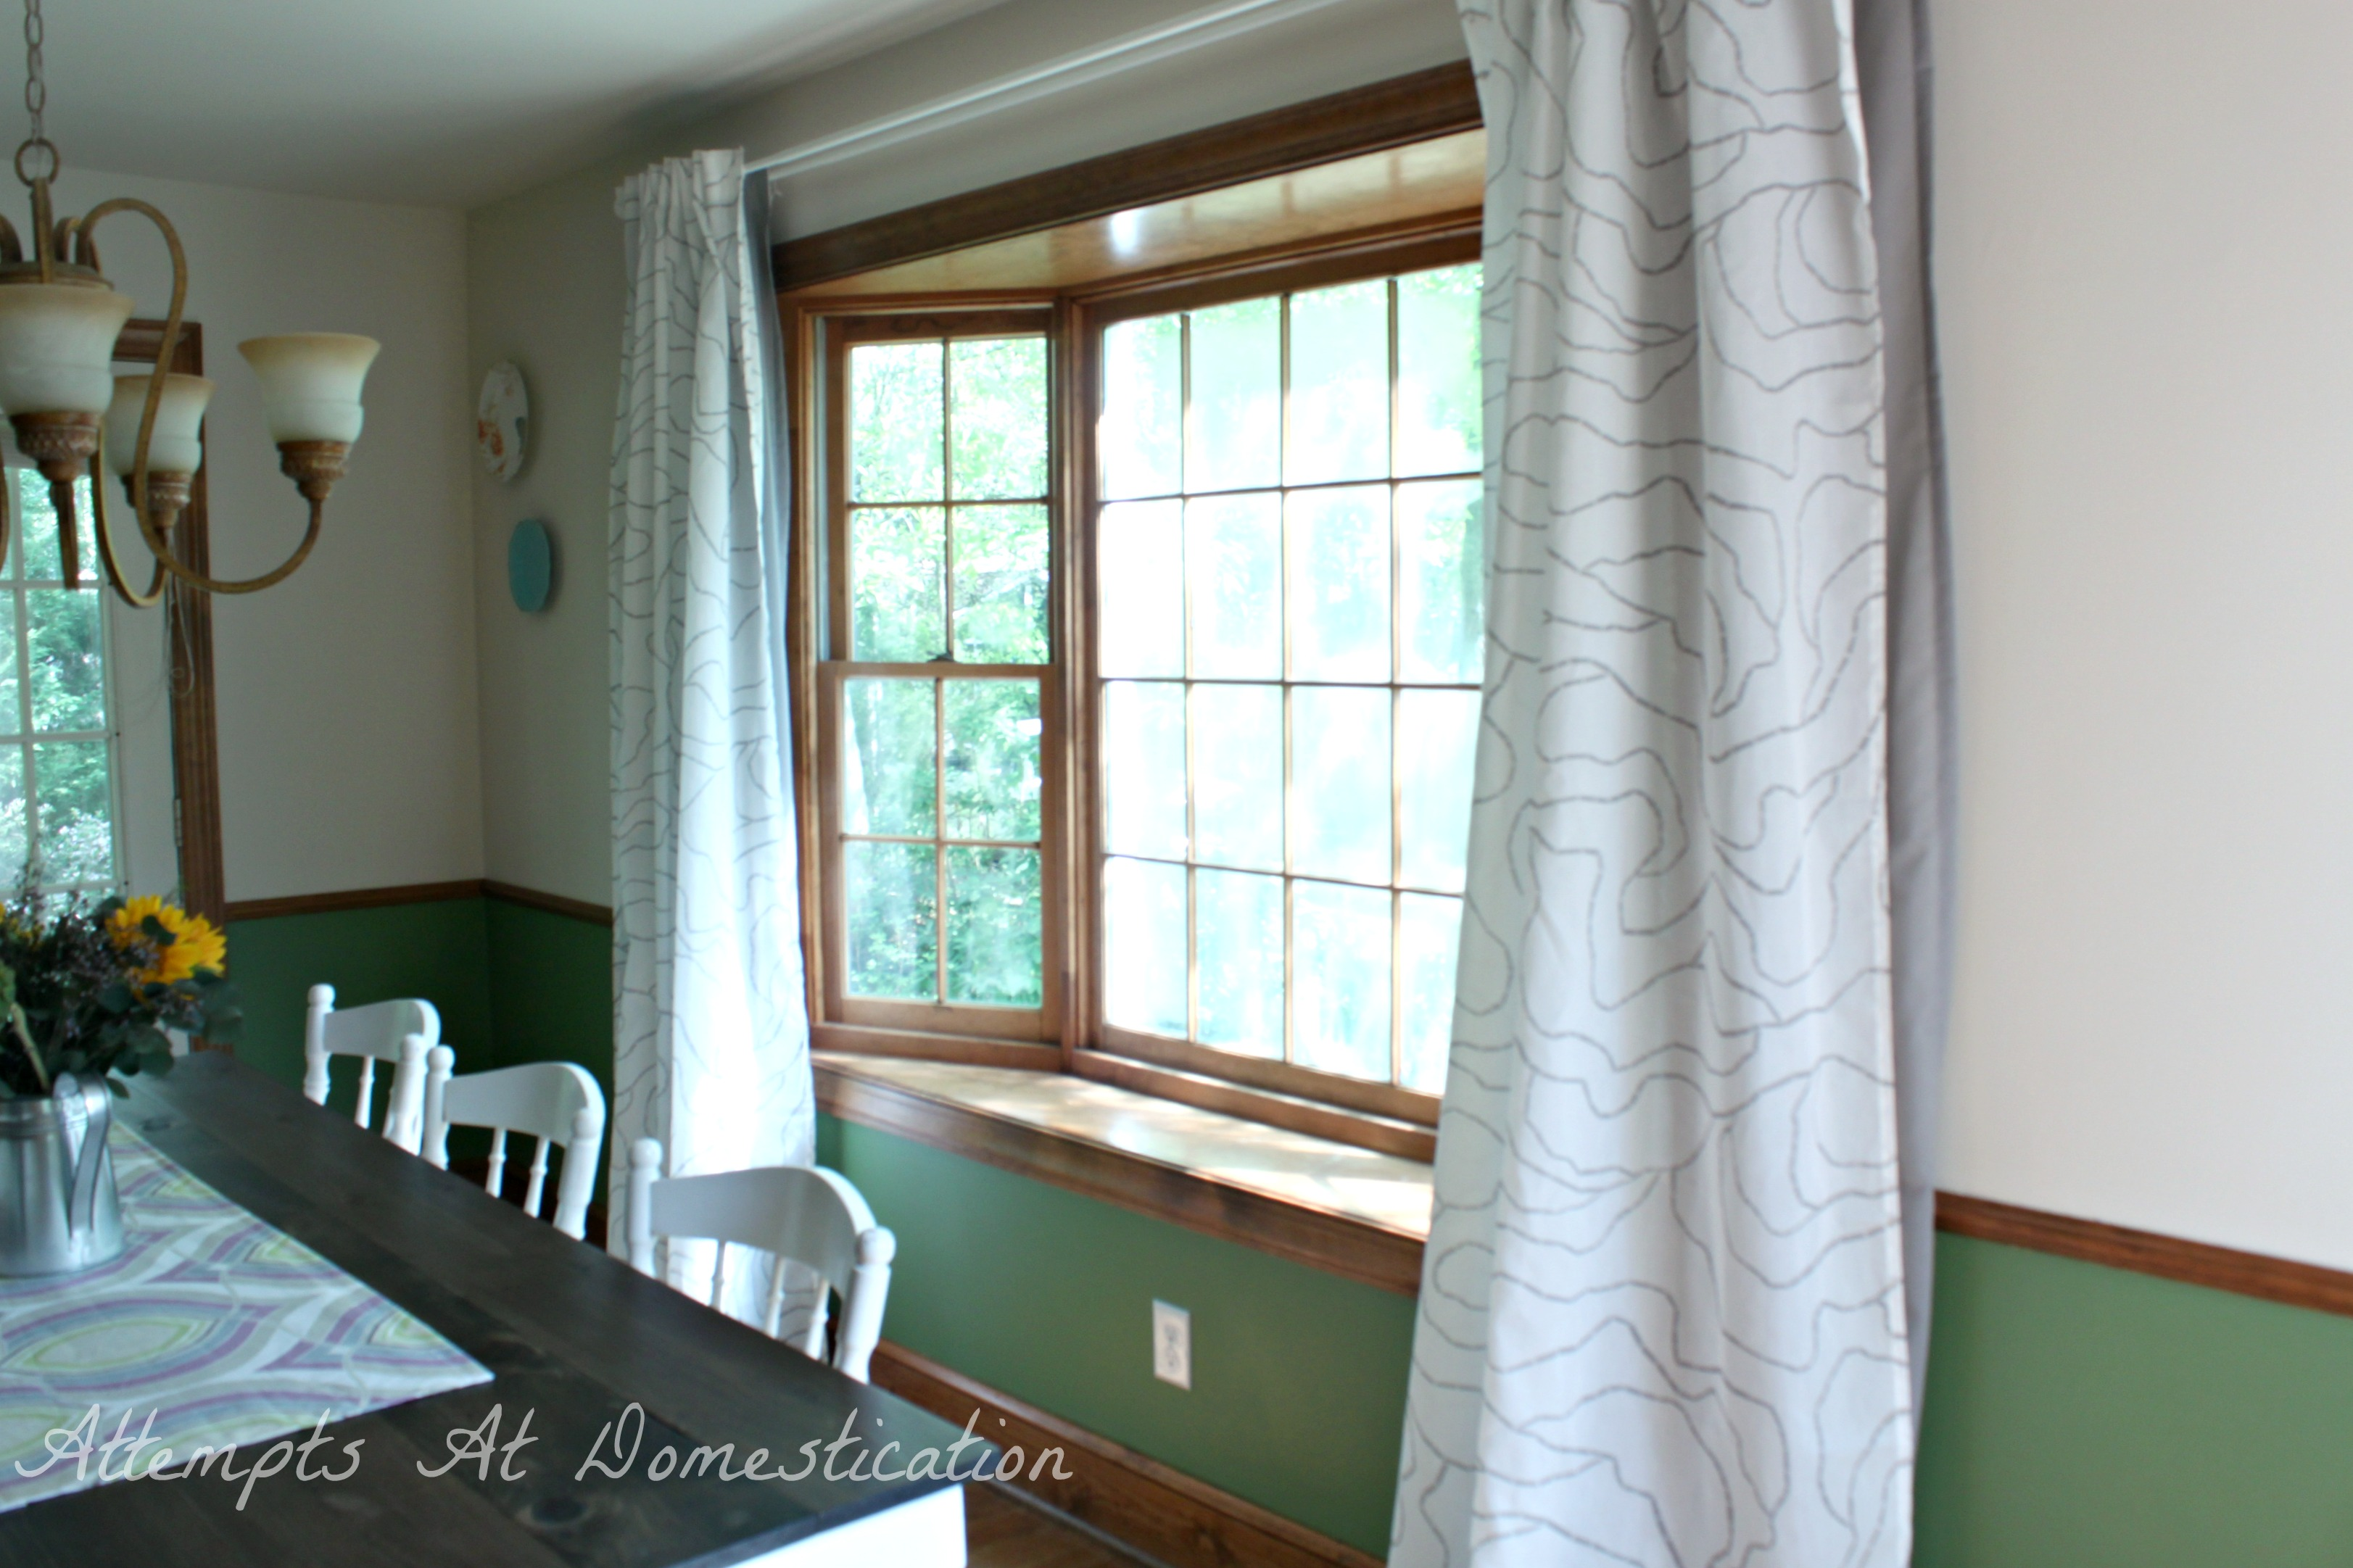 Dining room curtains attempts at domestication for Dining room drapes